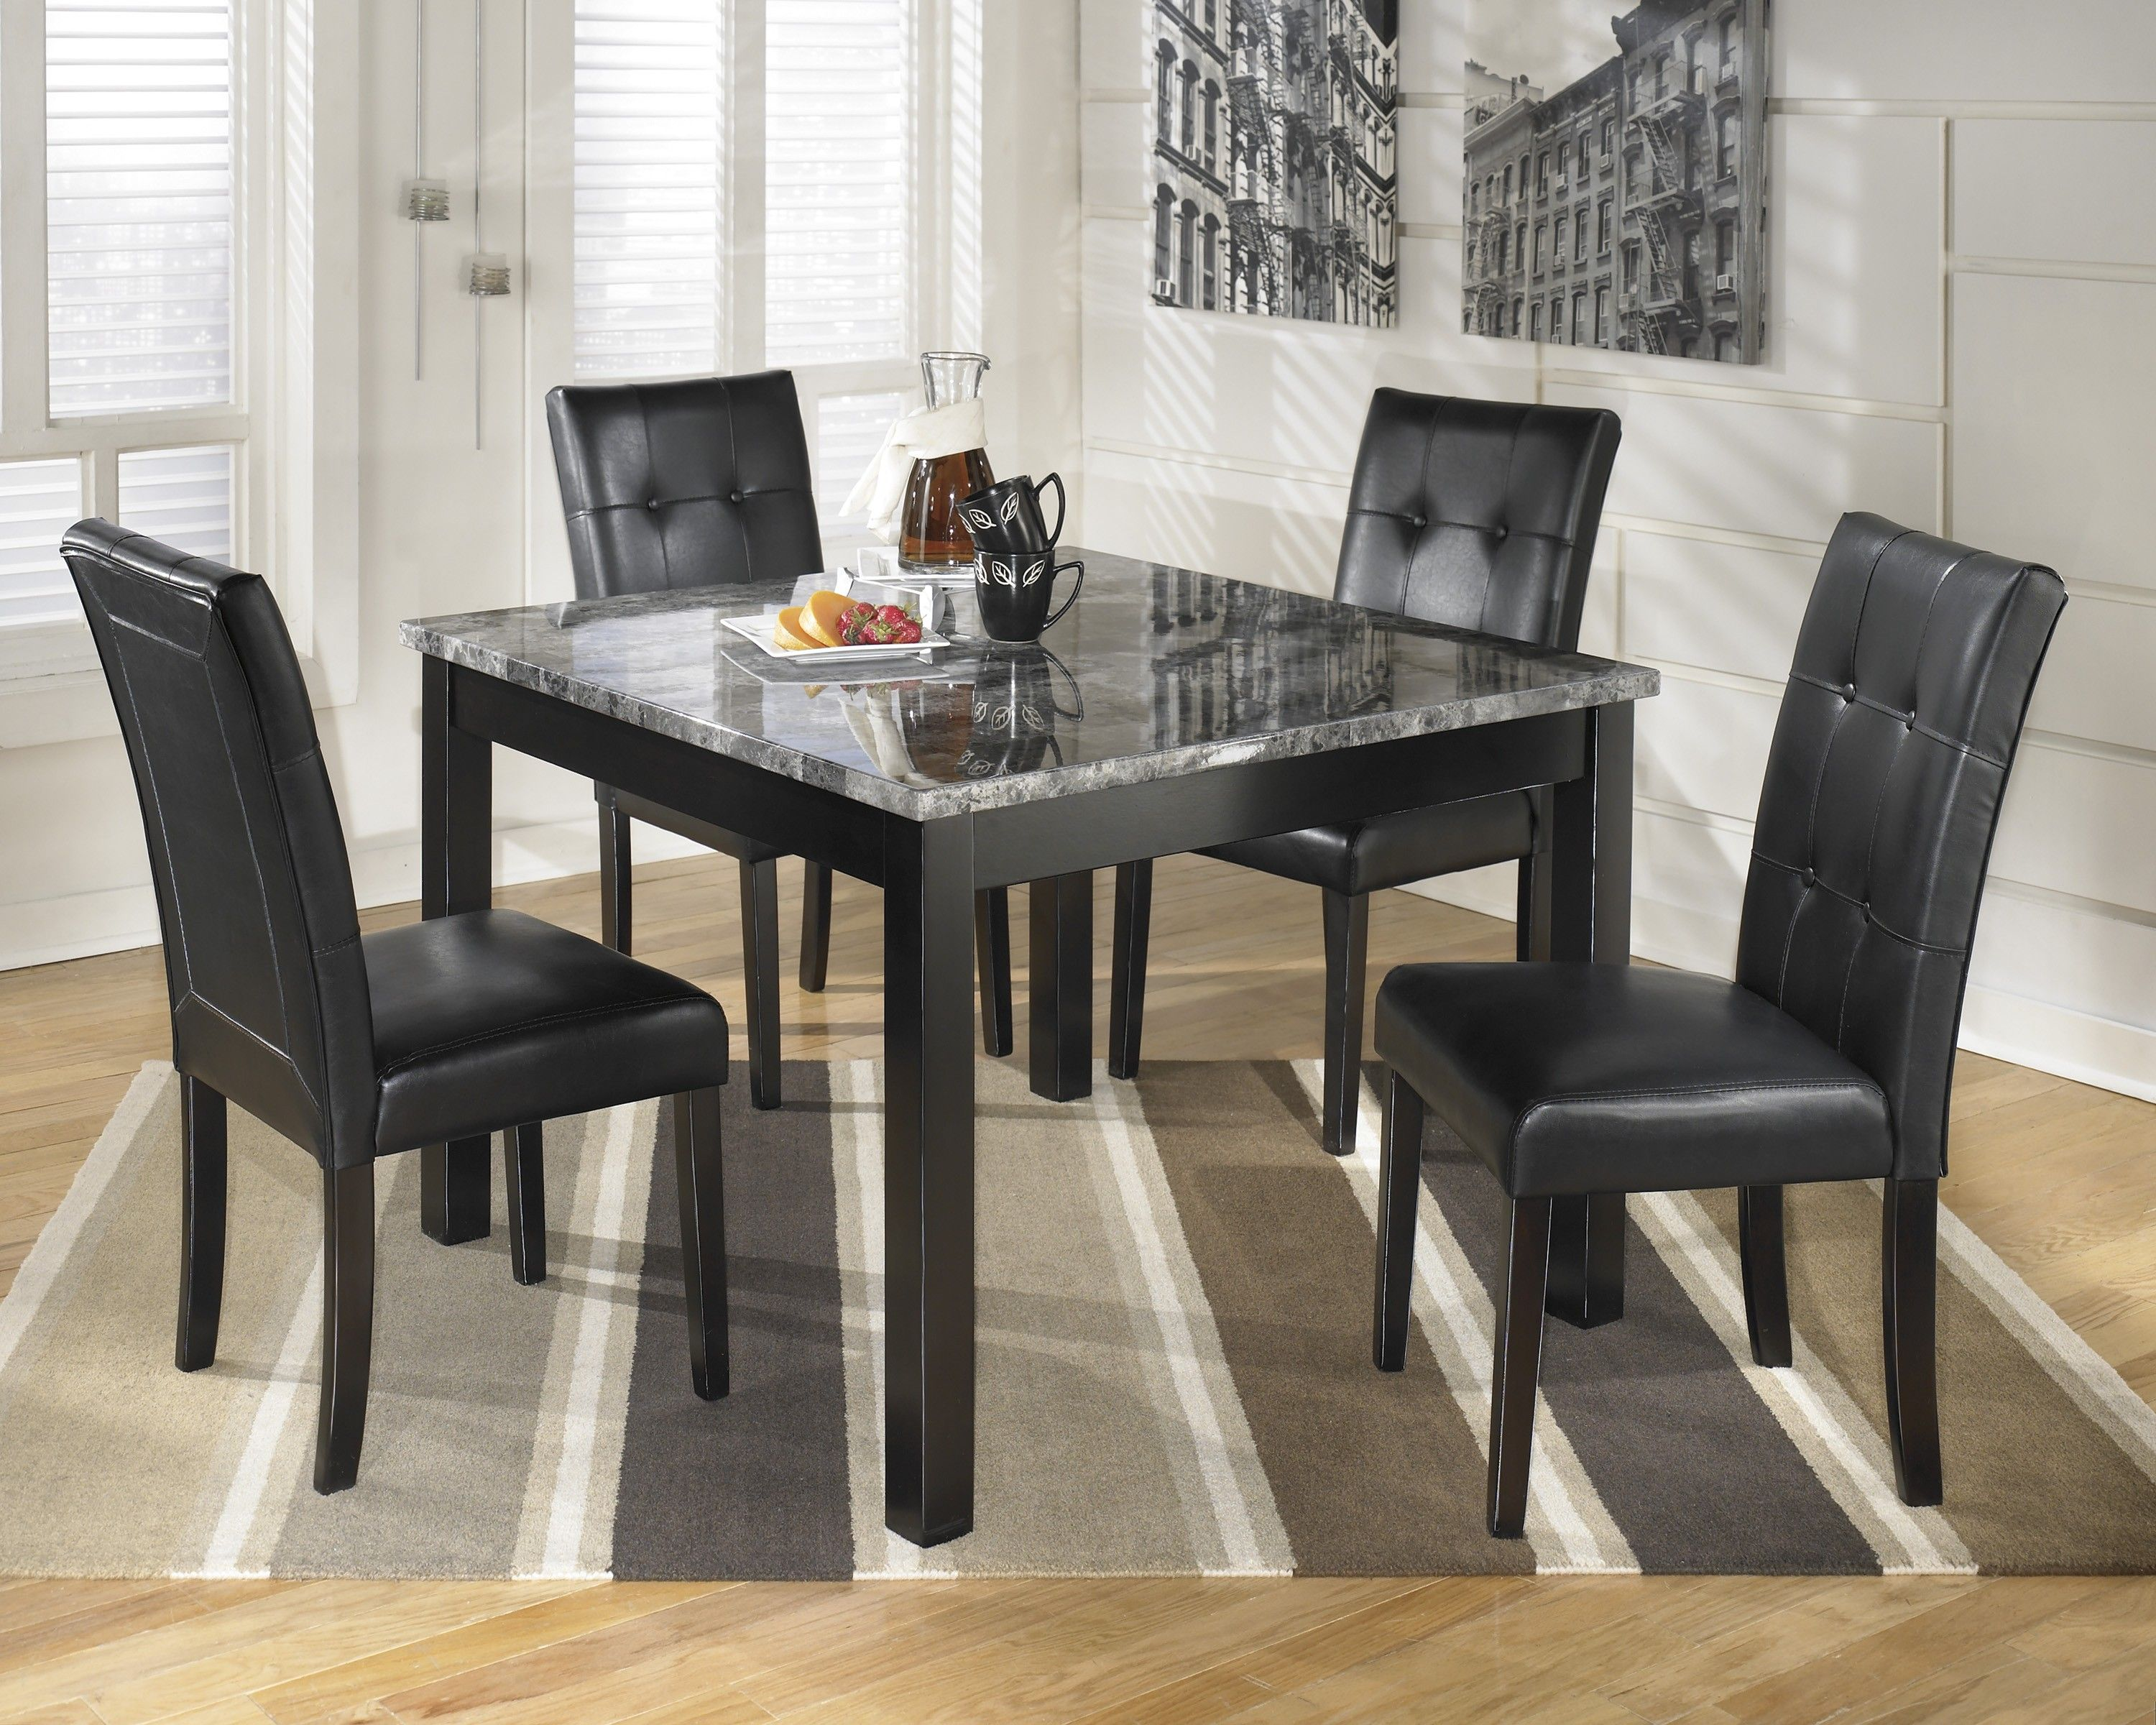 Maysville Black 5 Piece Square Dining Room Table Set Marble Top